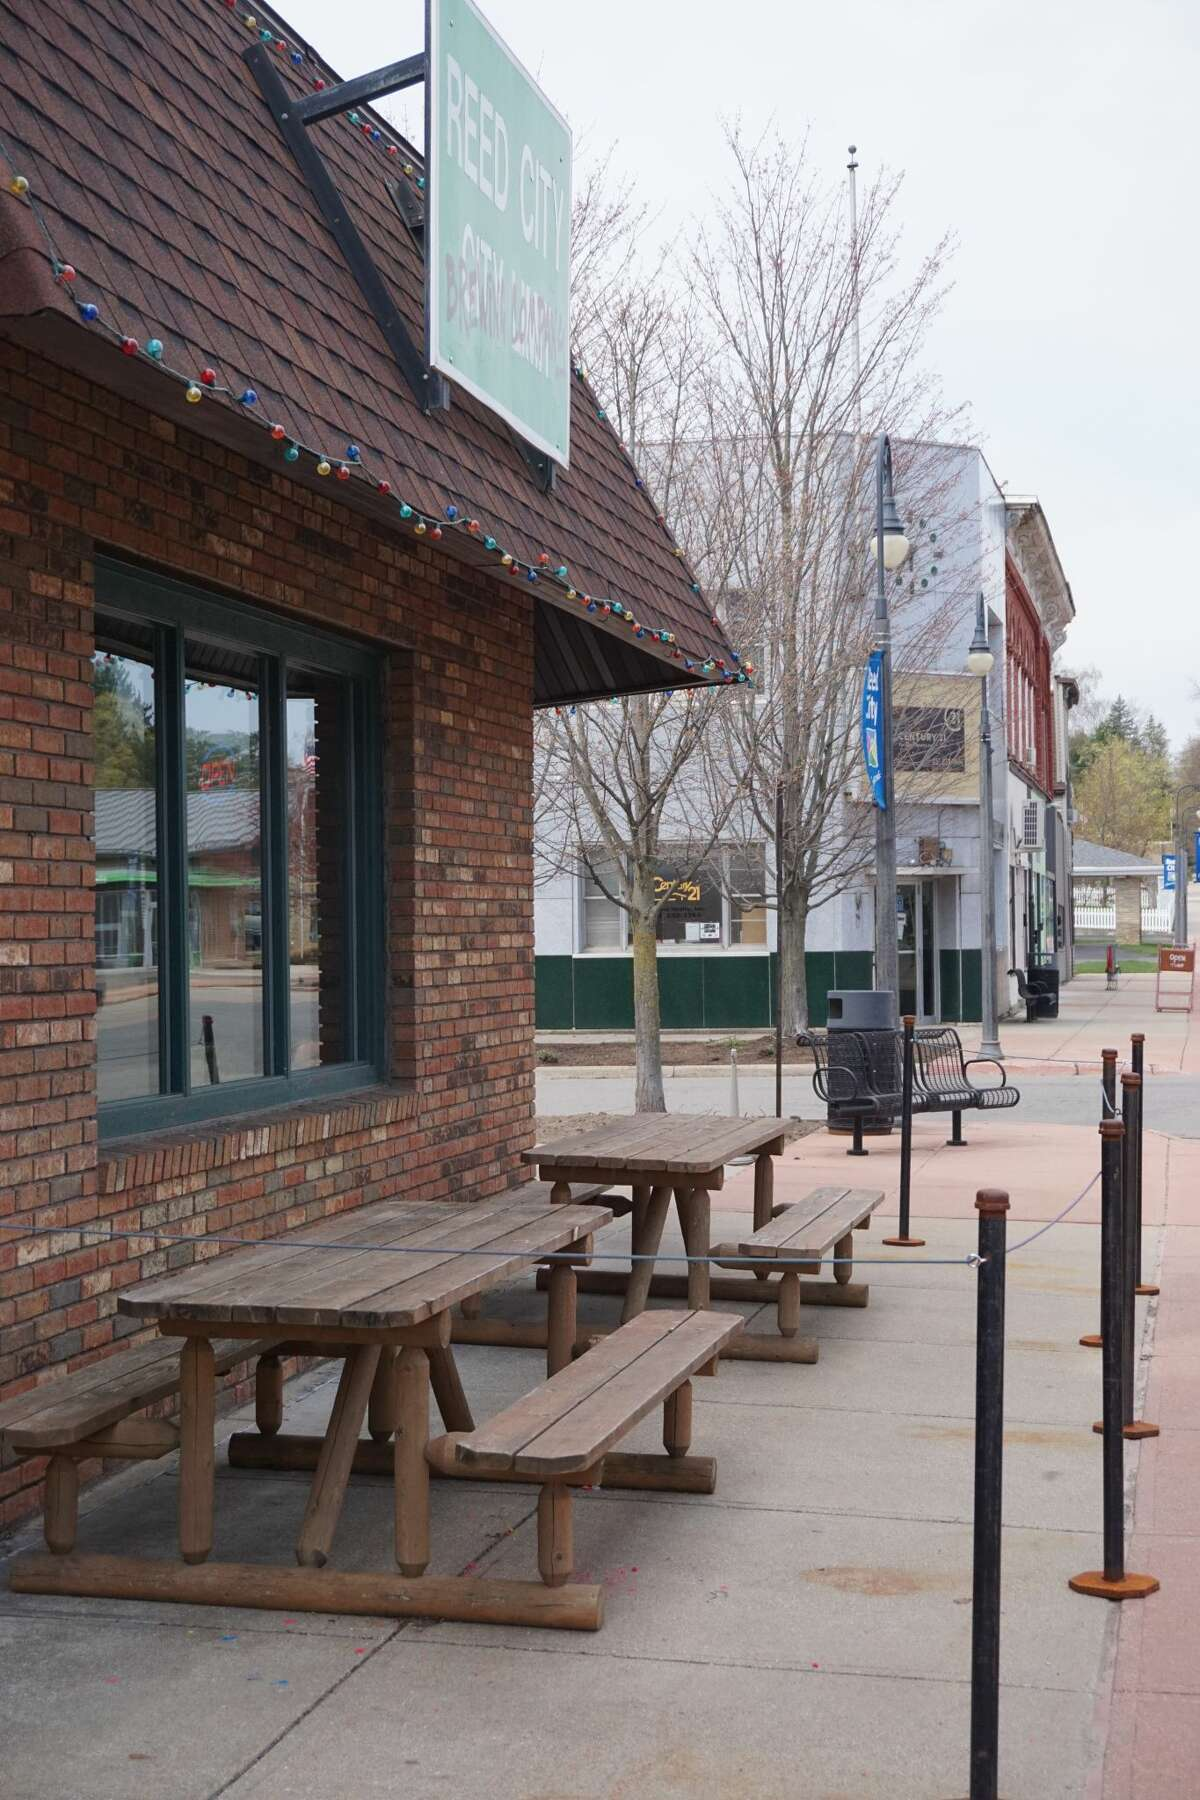 Reed City Brewing Company plans to increase its outdoor seating area in order to accommodate its growing business. The owners presented a plan to the Reed City city council with a request to increase the front outdoor seating along West Upton Street to 9 feet by 30 feet, and to use four of the parking spaces along Higbee Street as seating area.